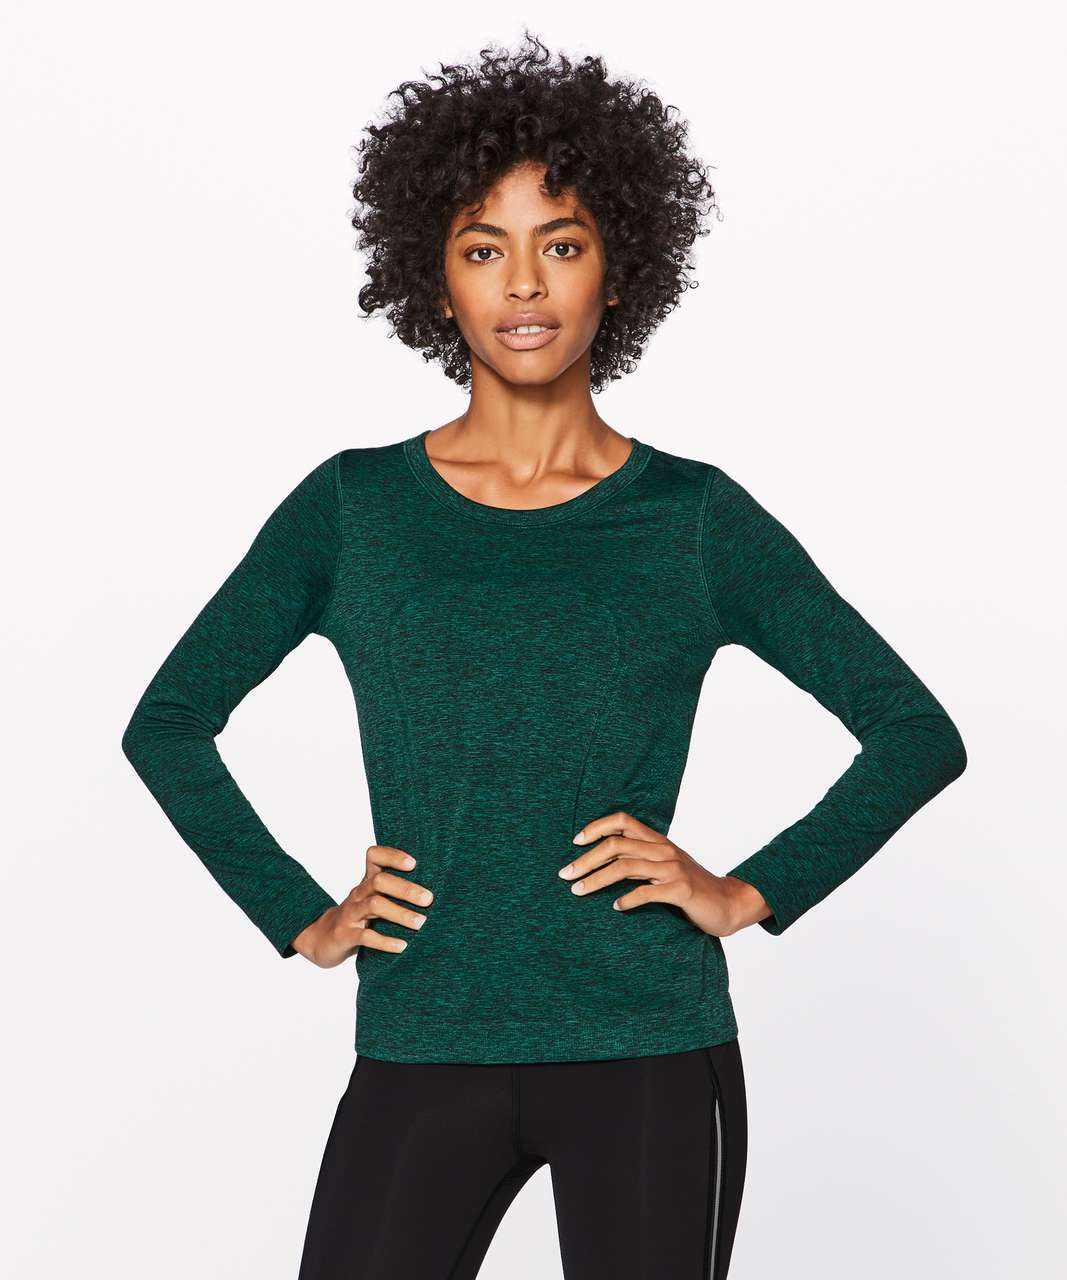 Lululemon Swiftly Tech Long Sleeve (Breeze) (Relaxed Fit) - Teal Green / Black